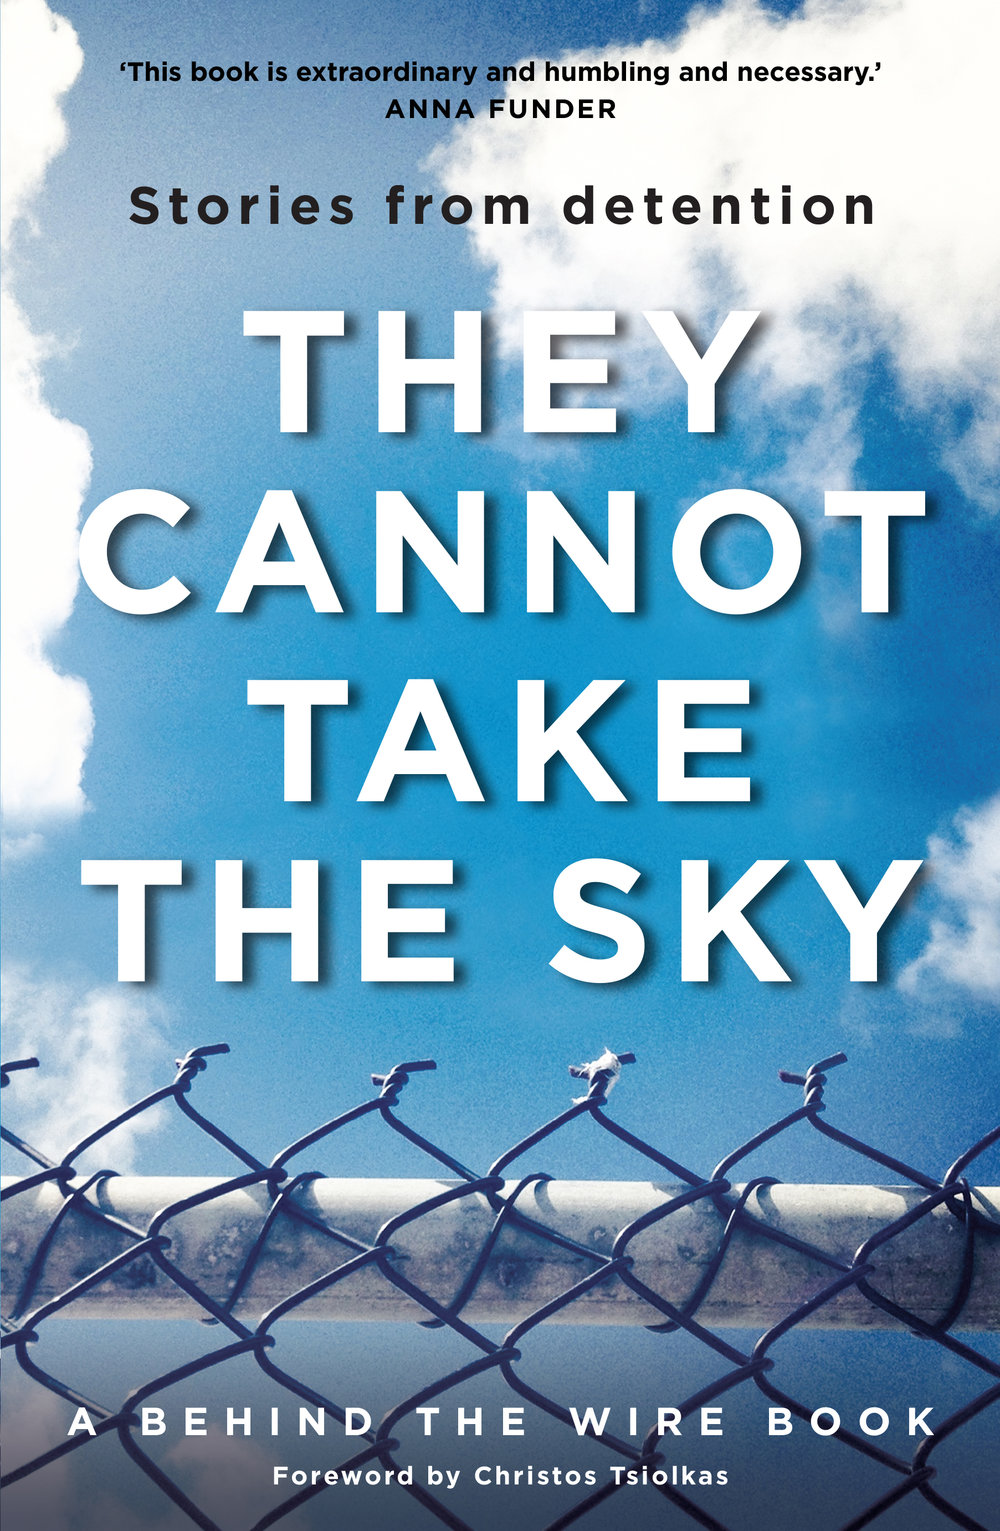 https://www.allenandunwin.com/browse/books/general-books/current-affairs-politics/They-Cannot-Take-the-Sky-Edited-by-Michael-Green-Andre-Dao-Angelica-Neville-Dana-Affleck-and-Sienna-Merope-9781760292805